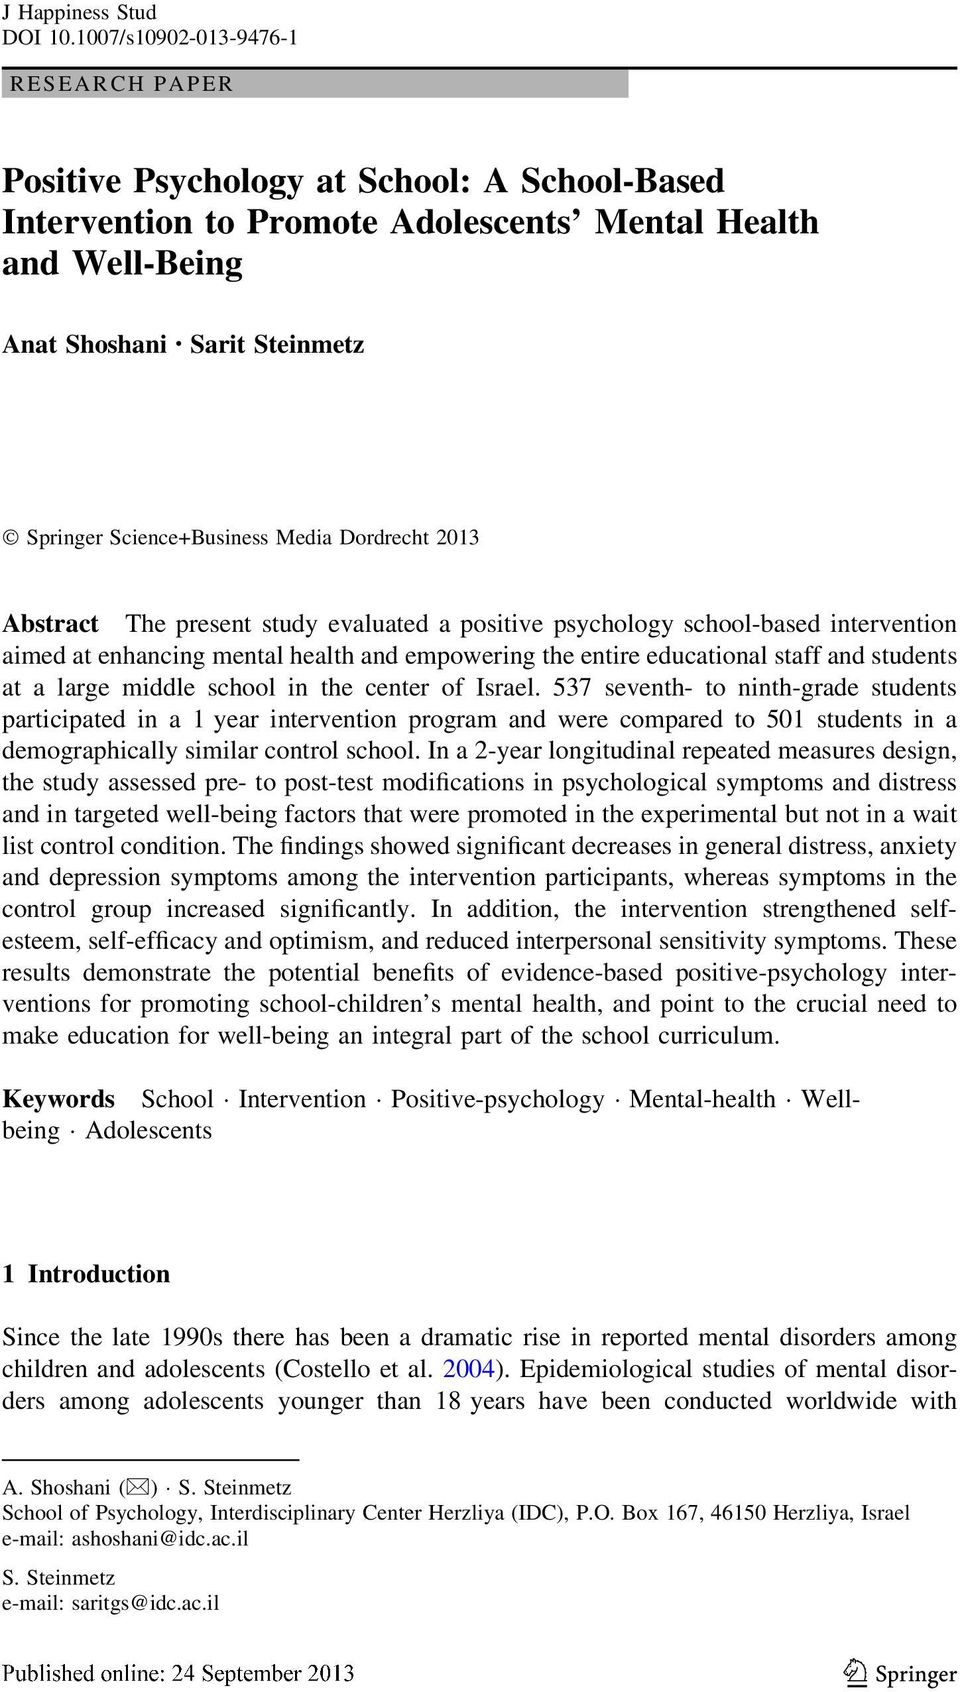 Science+Business Media Dordrecht 2013 Abstract The present study evaluated a positive psychology school-based intervention aimed at enhancing mental health and empowering the entire educational staff